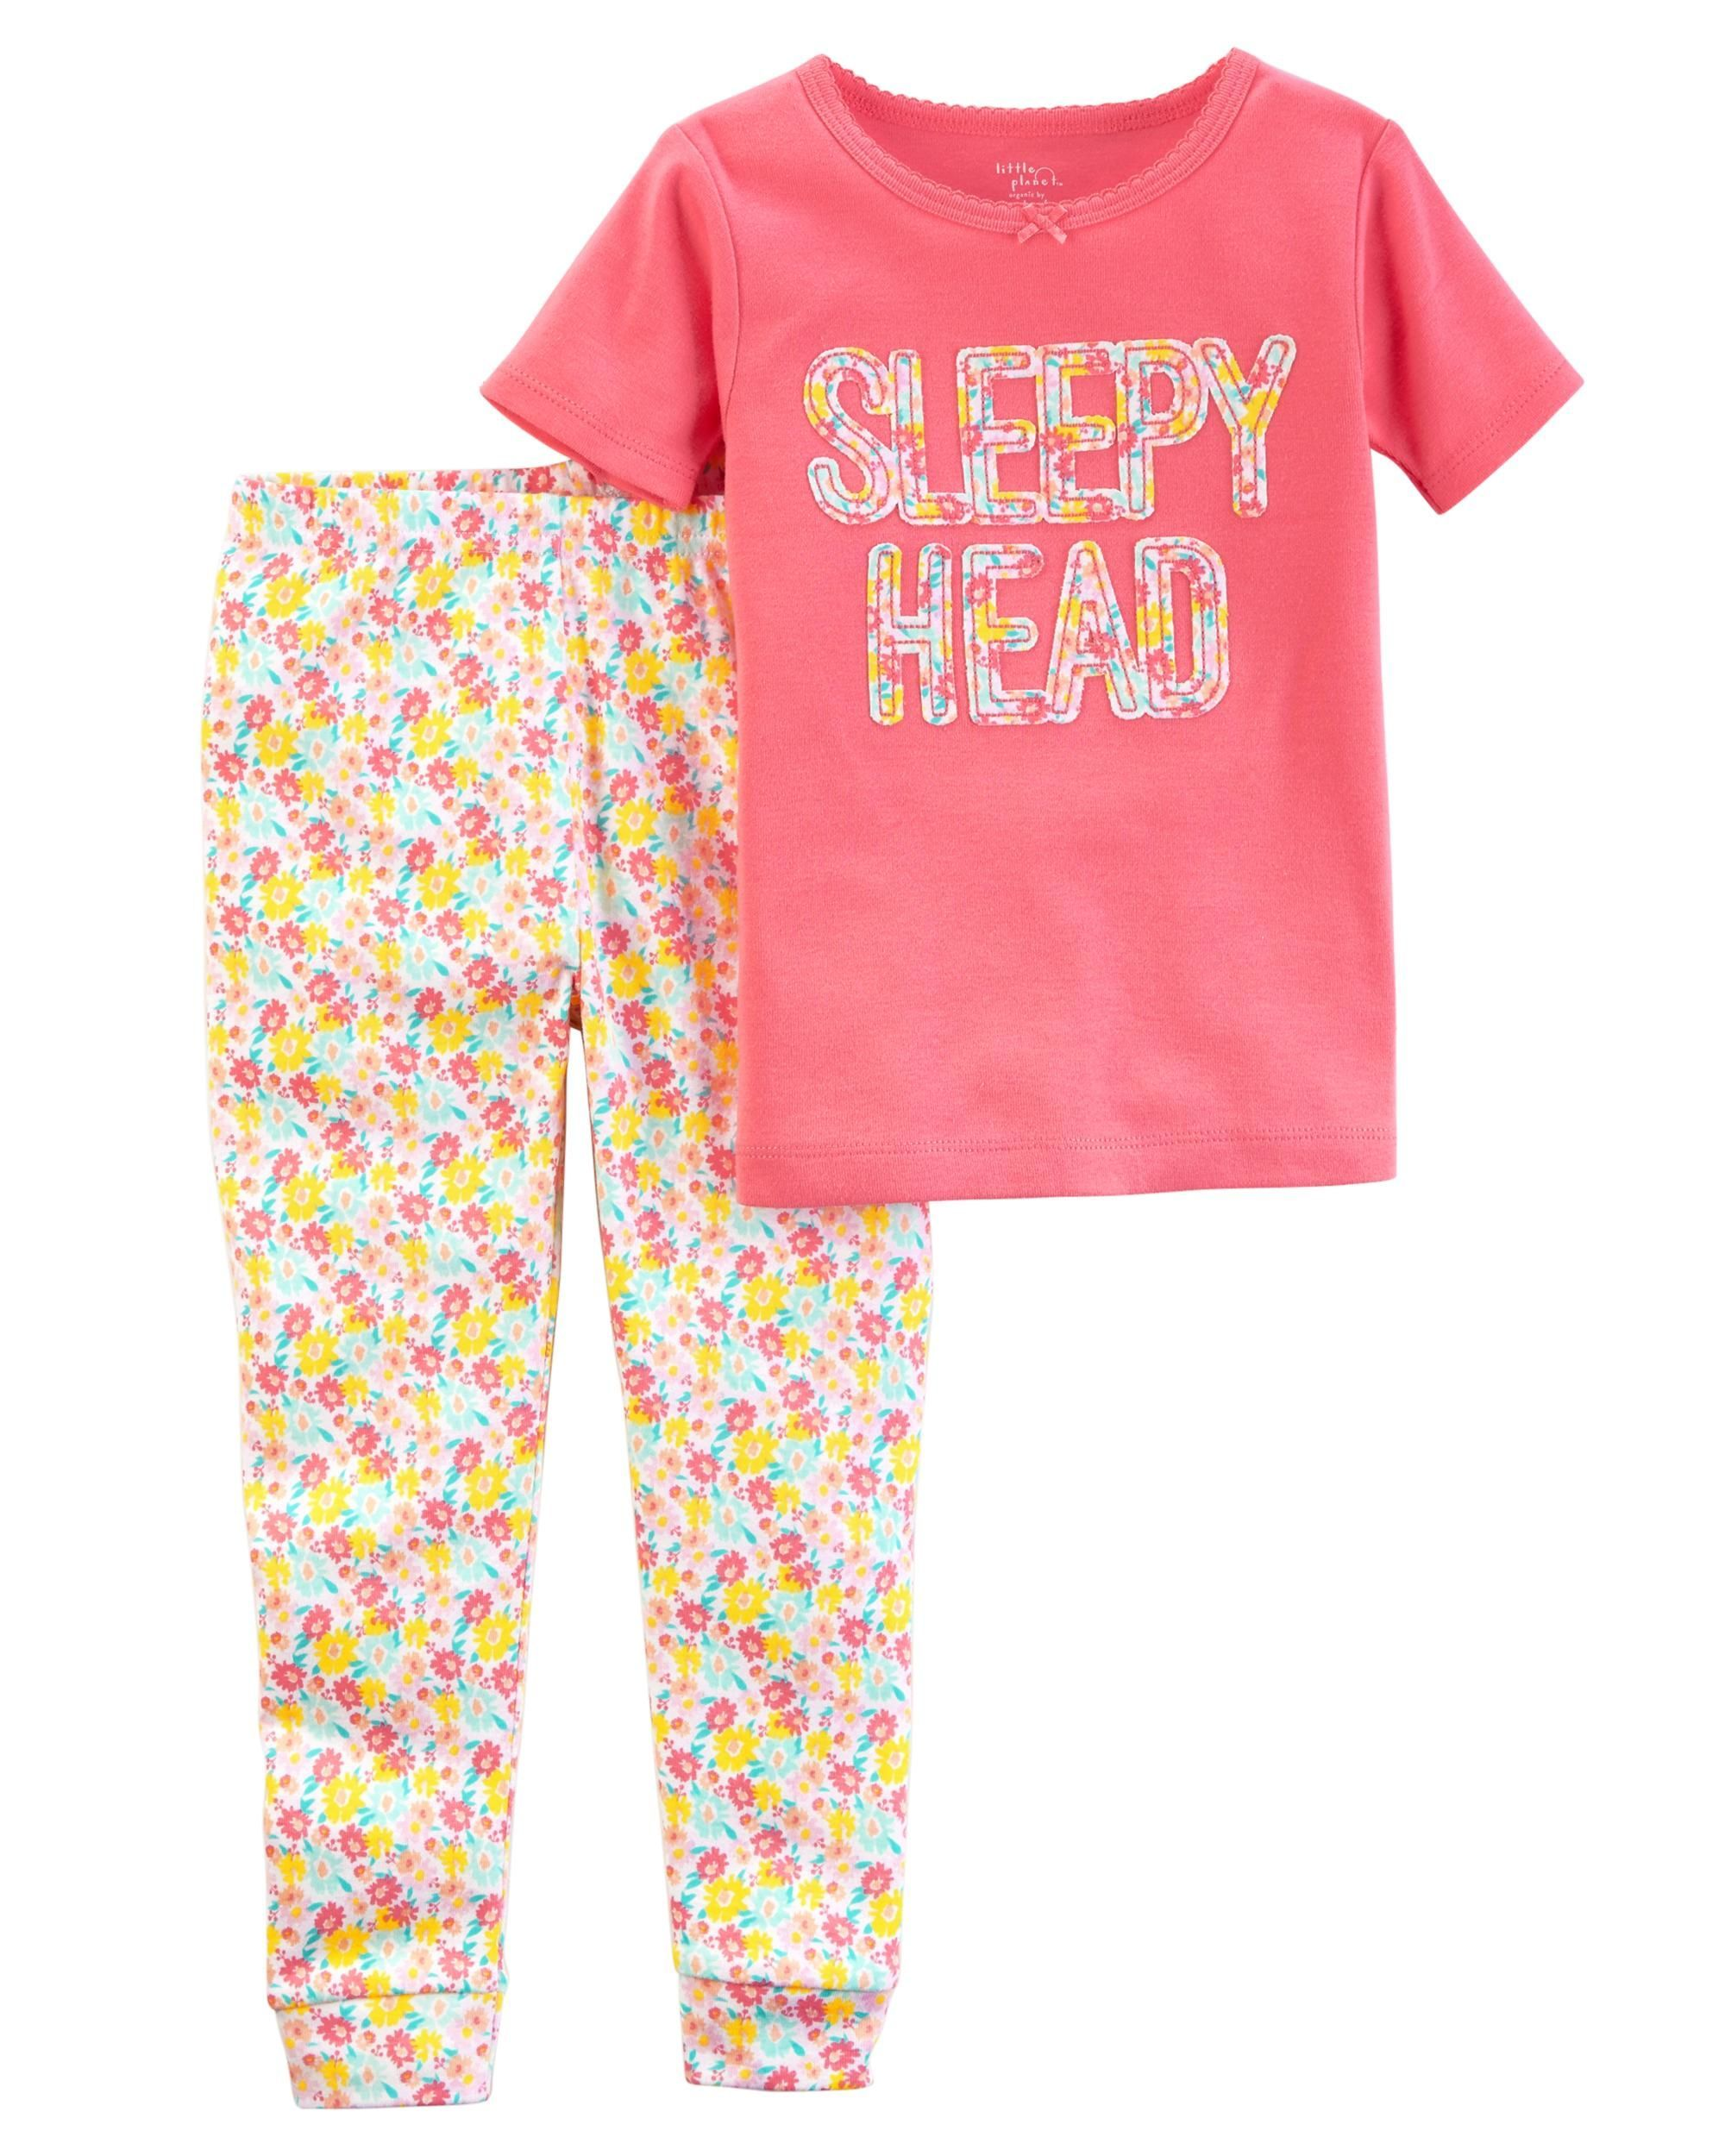 77d77fa76 2-Piece Certified Organic Snug Fit Cotton PJs